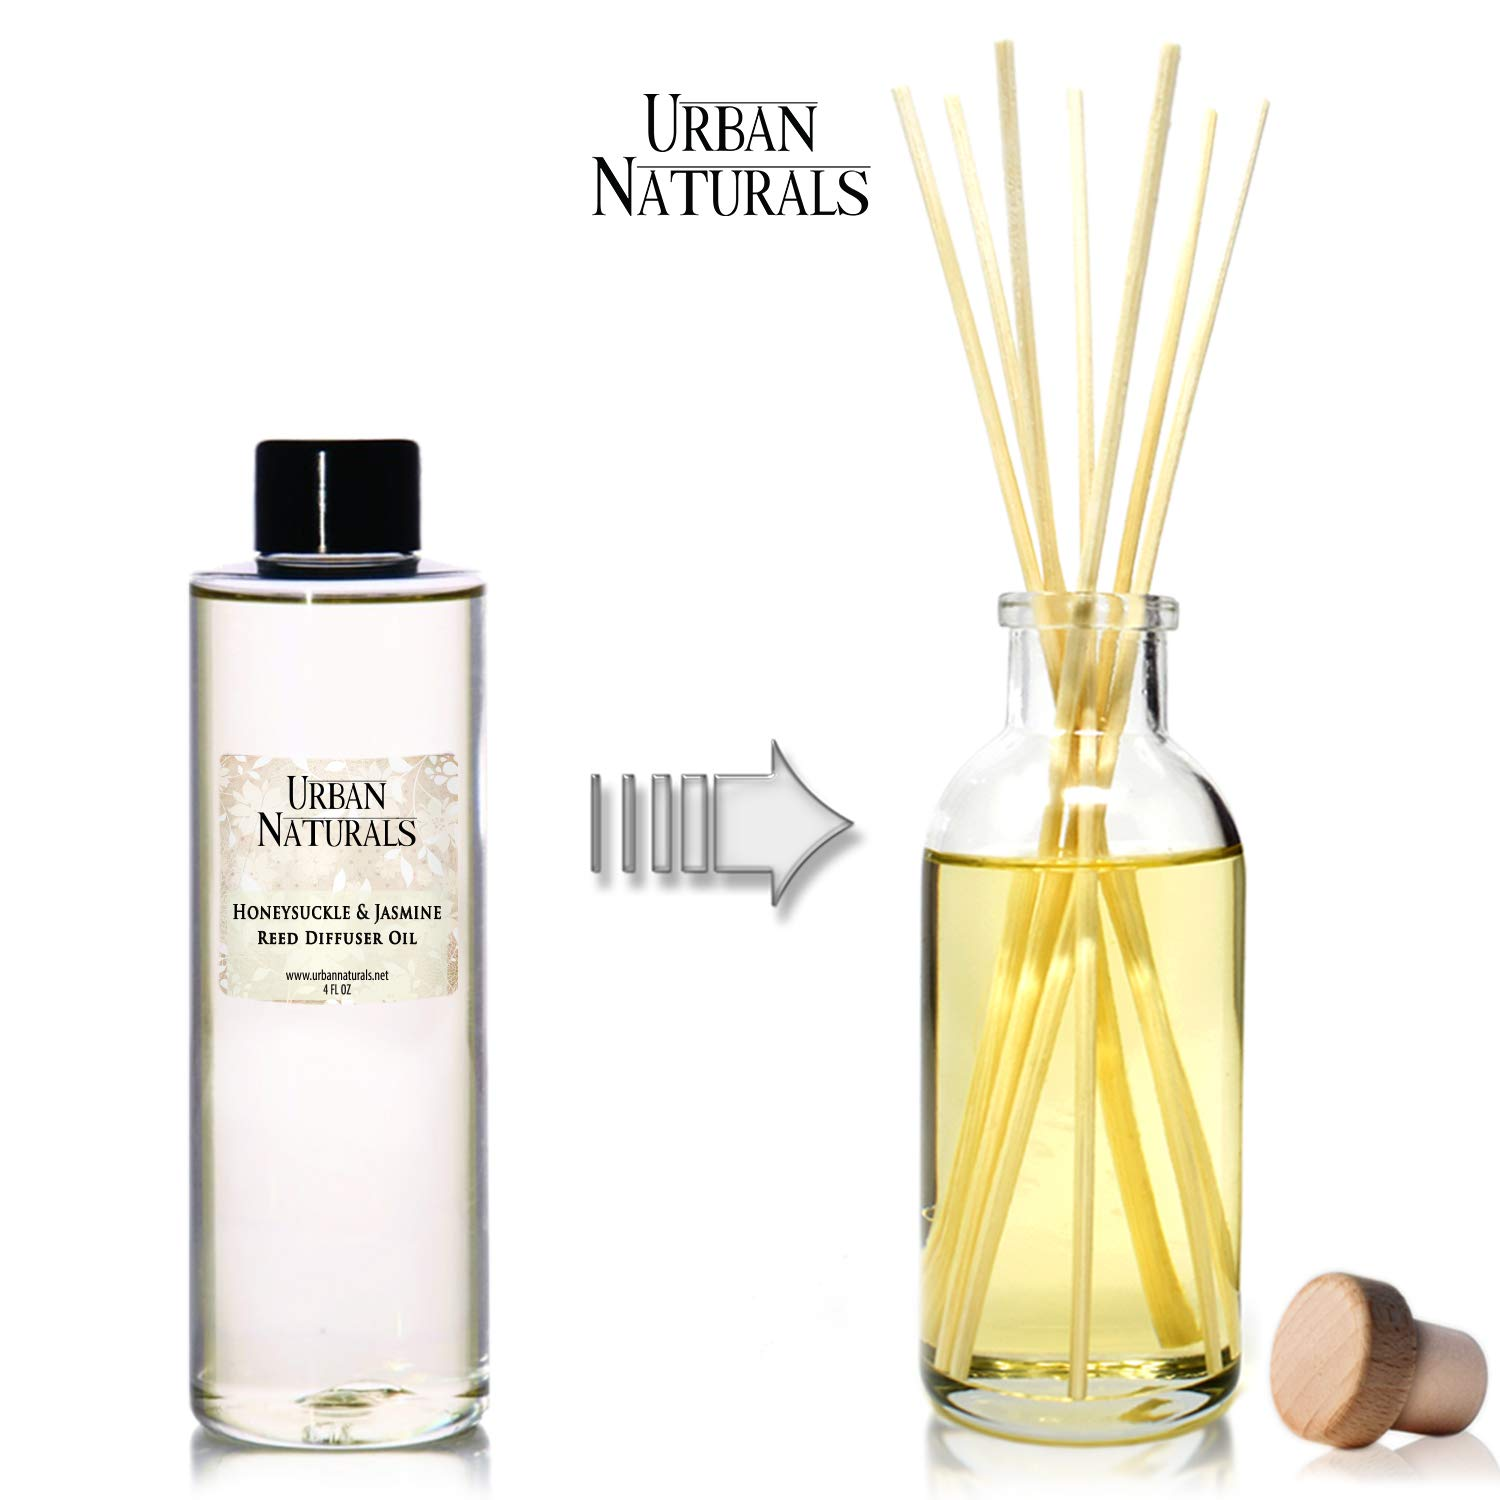 Urban Naturals Honeysuckle & Jasmine Reed Diffuser Oil Refill | Beautiful Floral Fragrance | Hyacinth, Neroli, Iris, Rose & Lily of The Valley | Includes Free Set of Reed Sticks! Made in The USA by Urban Naturals (Image #2)